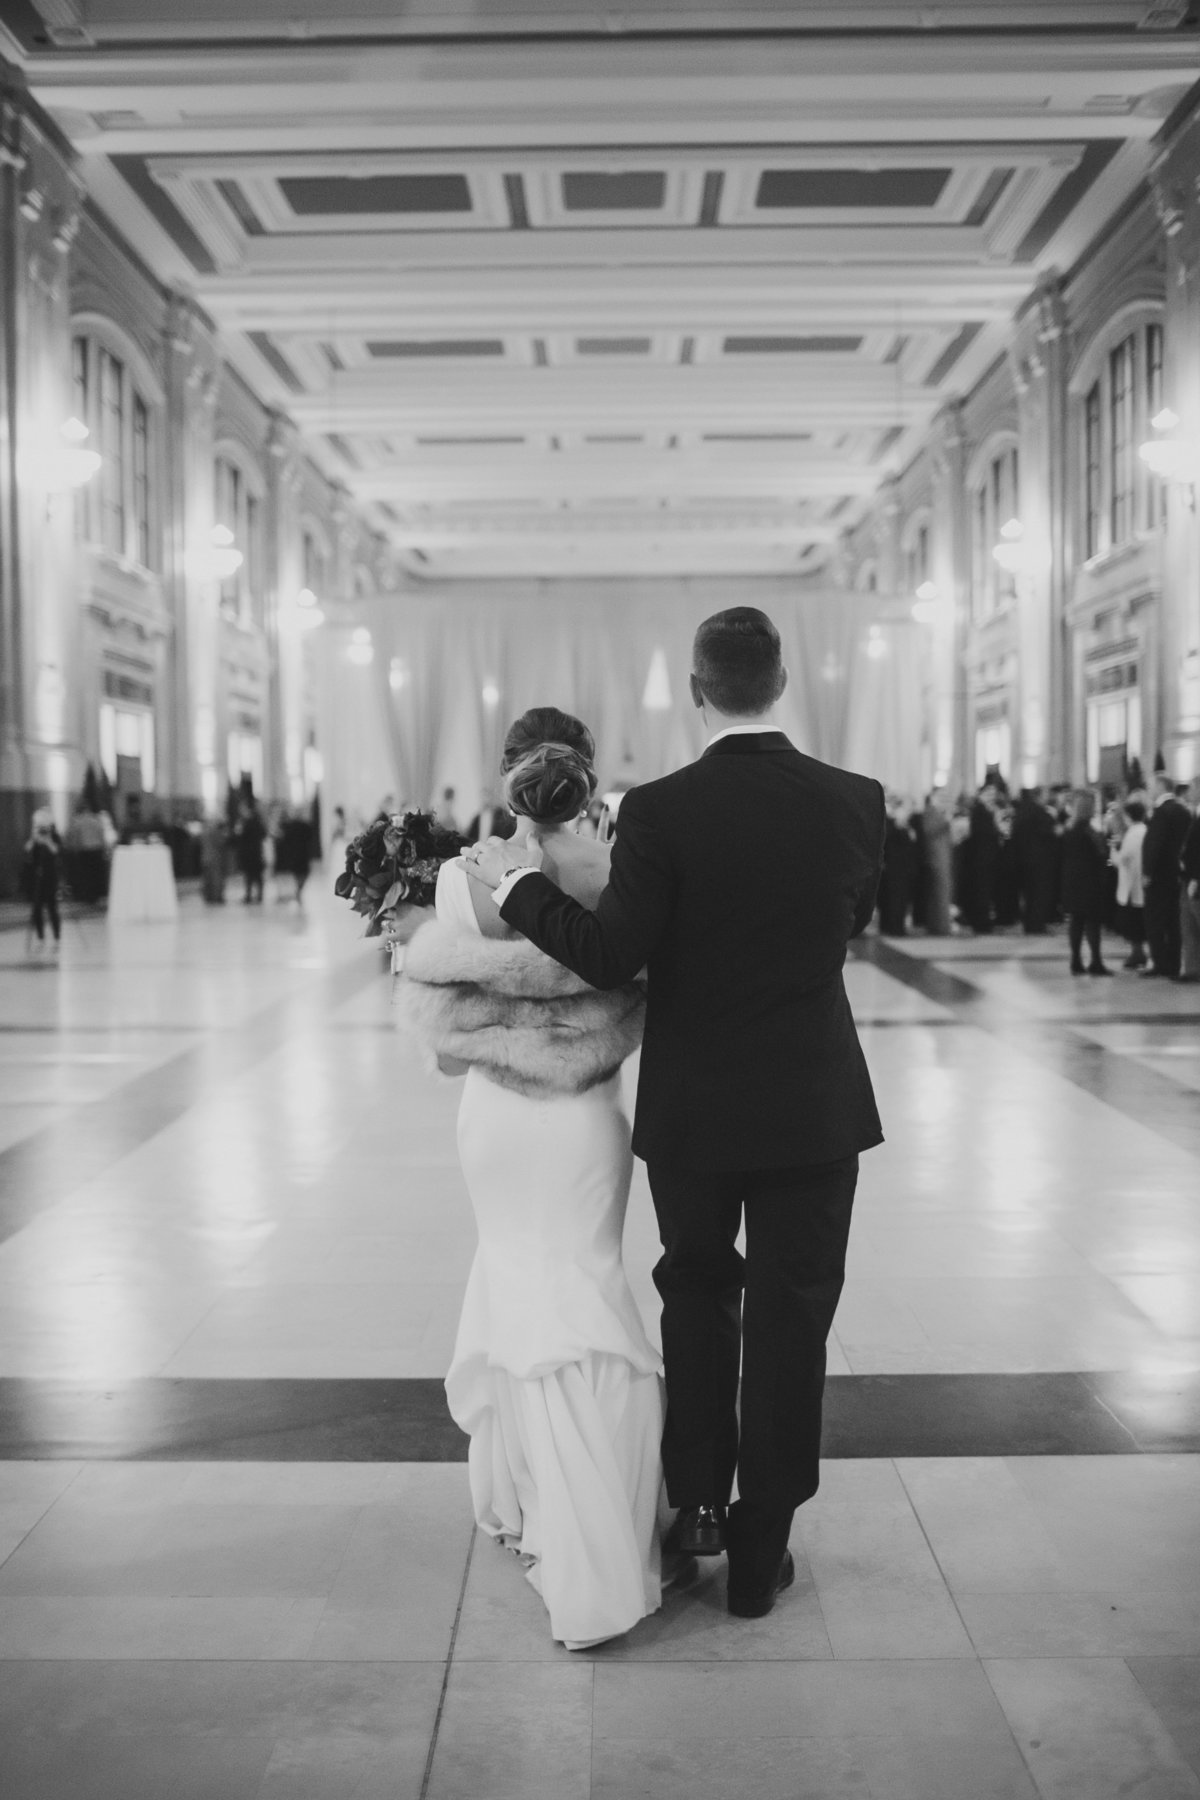 UnionStationKansascityWedding_BaileyTerry_CatherineRhodesPhotography-2136-Edit